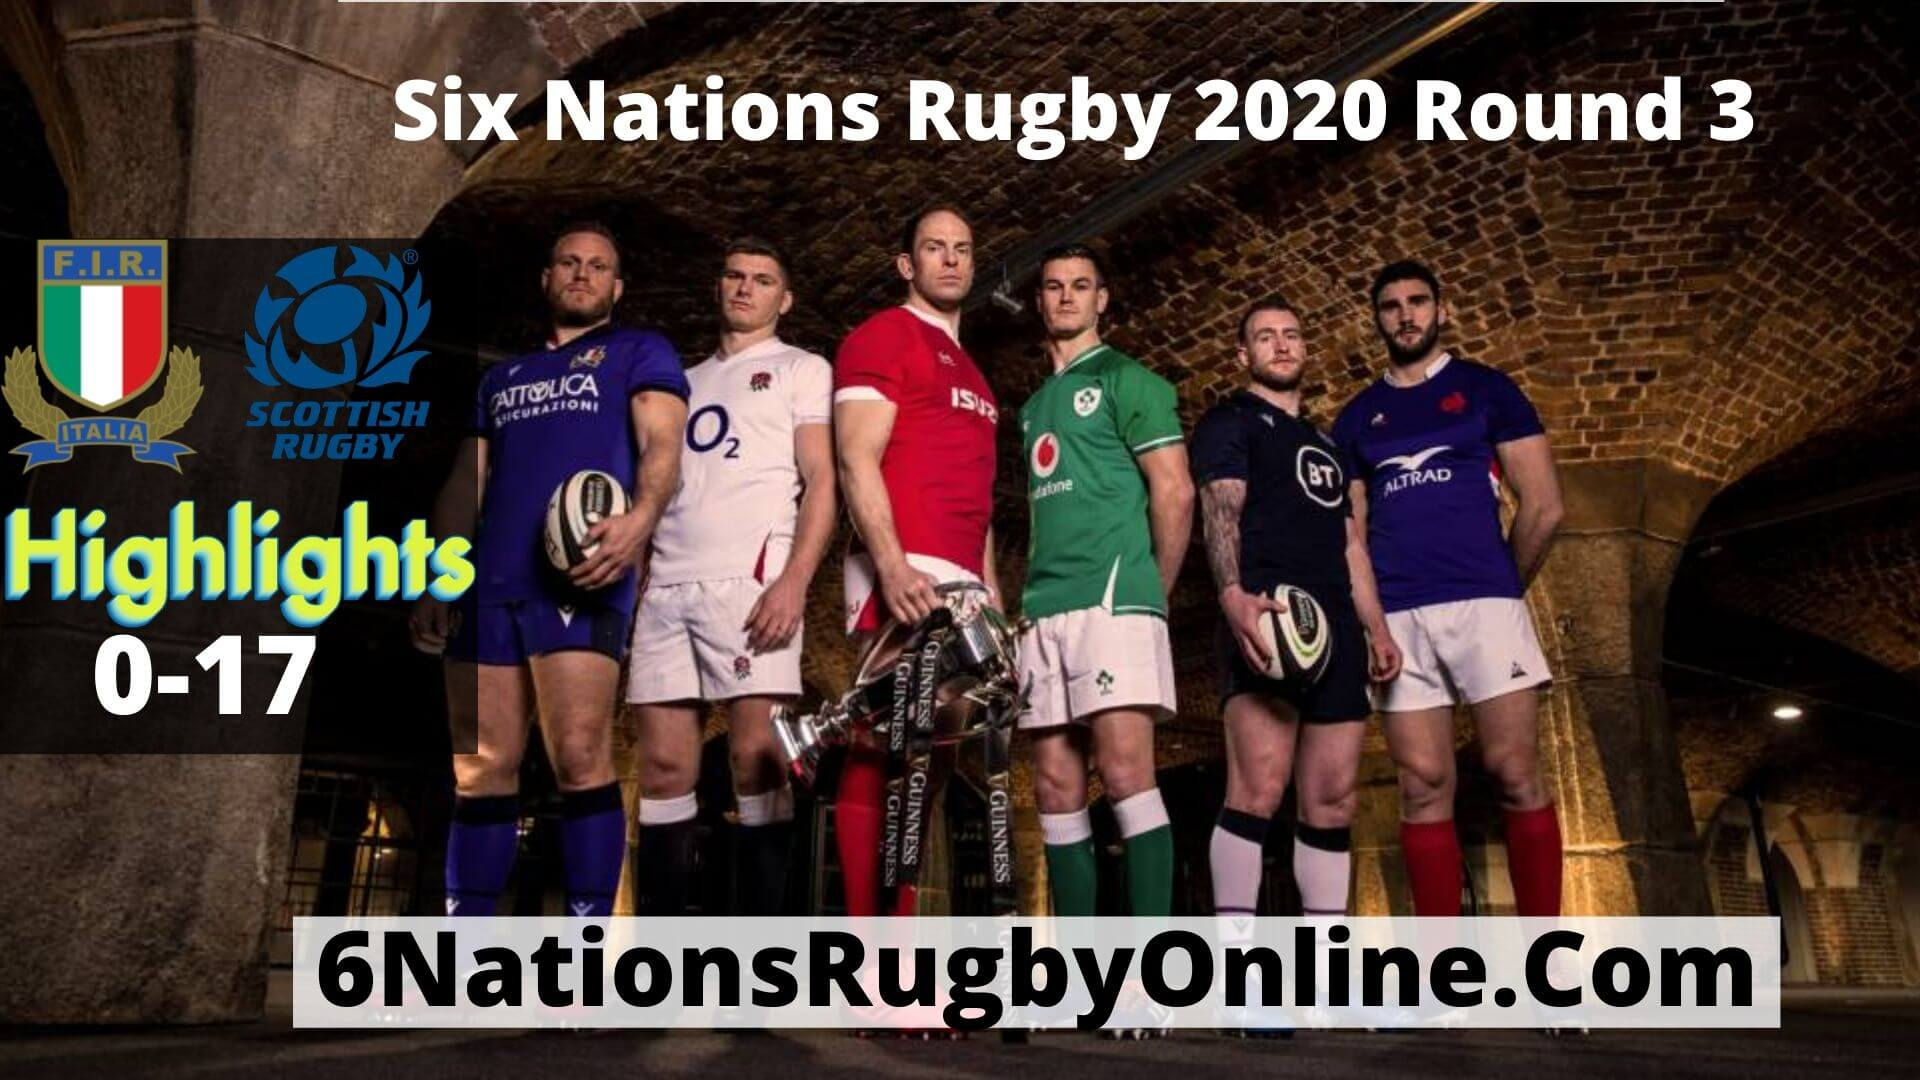 Italy Vs Scotland highlights 2020 Rd 3 Six Nations Rugby